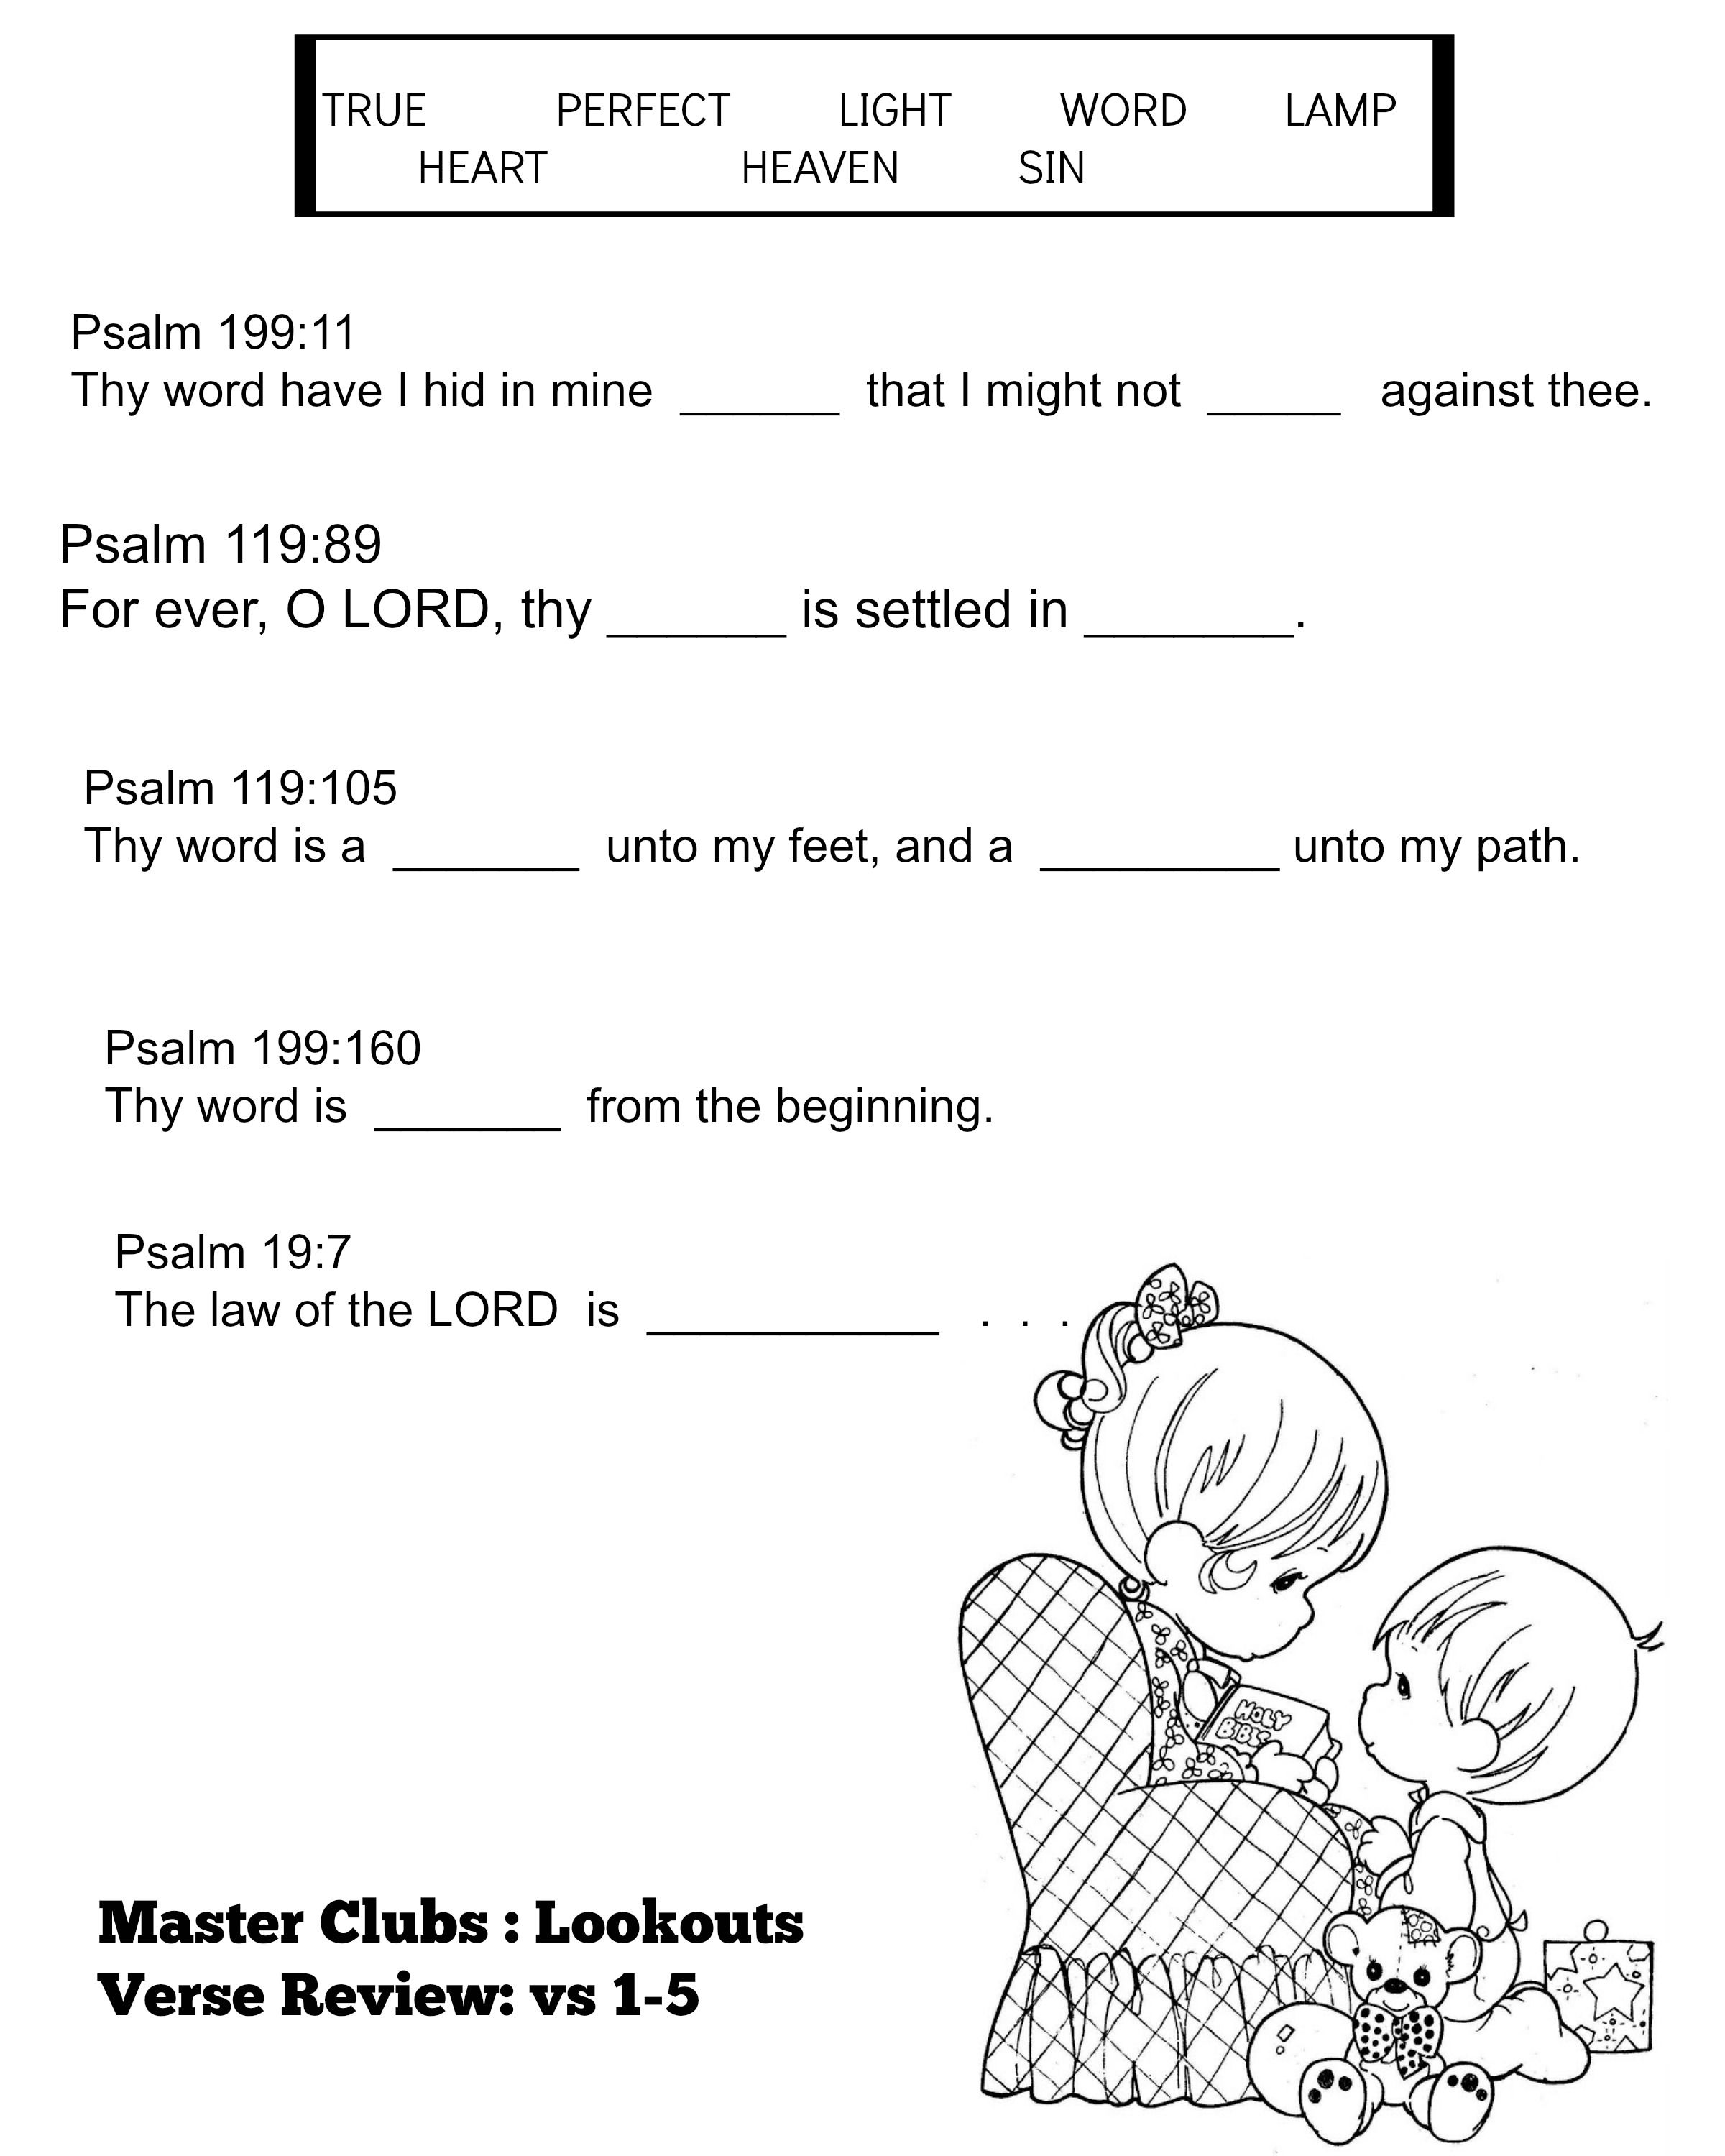 verse review verses 1 5 master clubs lookouts bible verse coloring